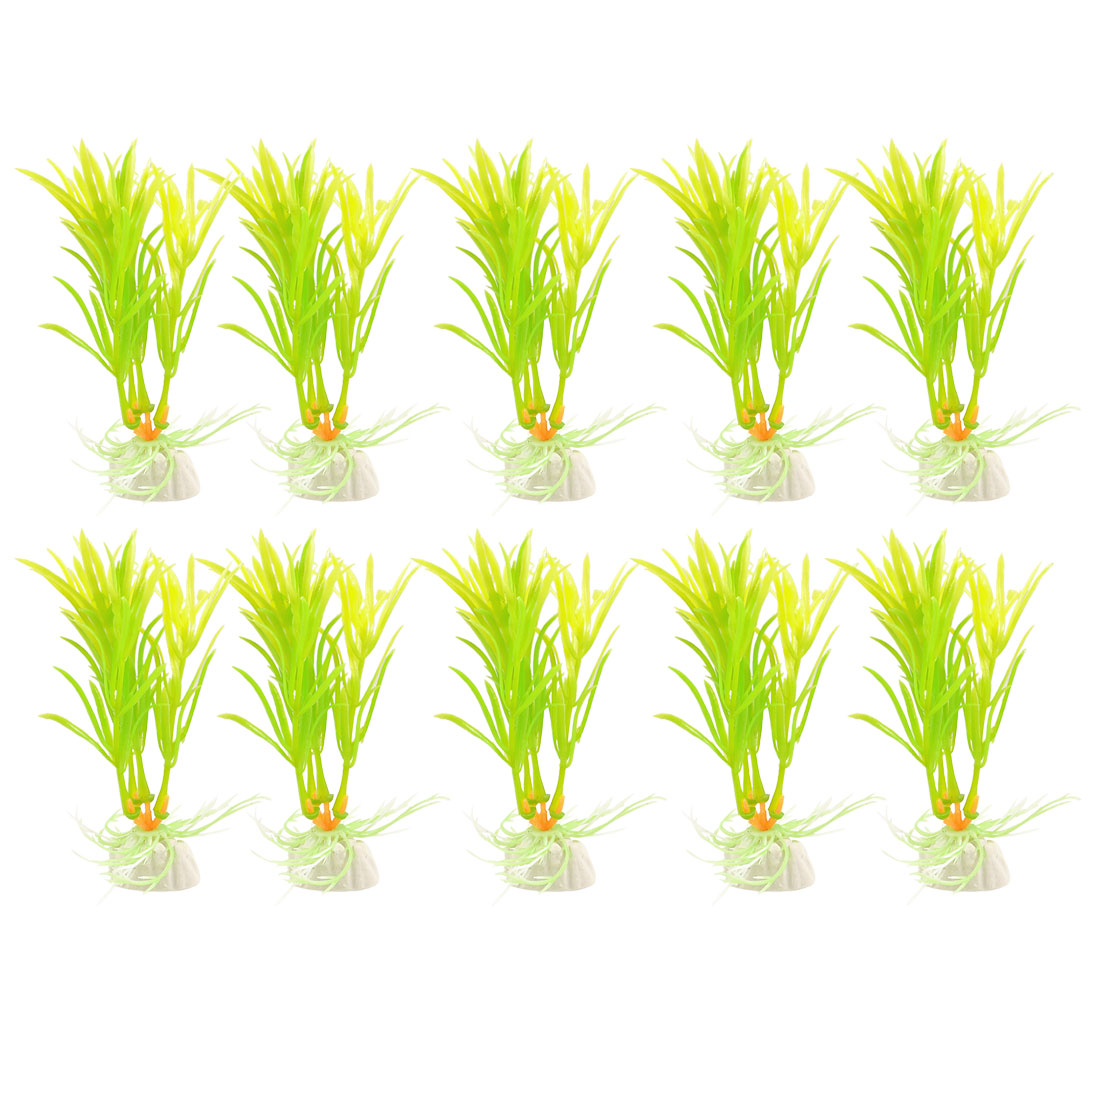 "10 Pcs 4.3"" Height Green Yellow Plastic Grass Plant Ornament"